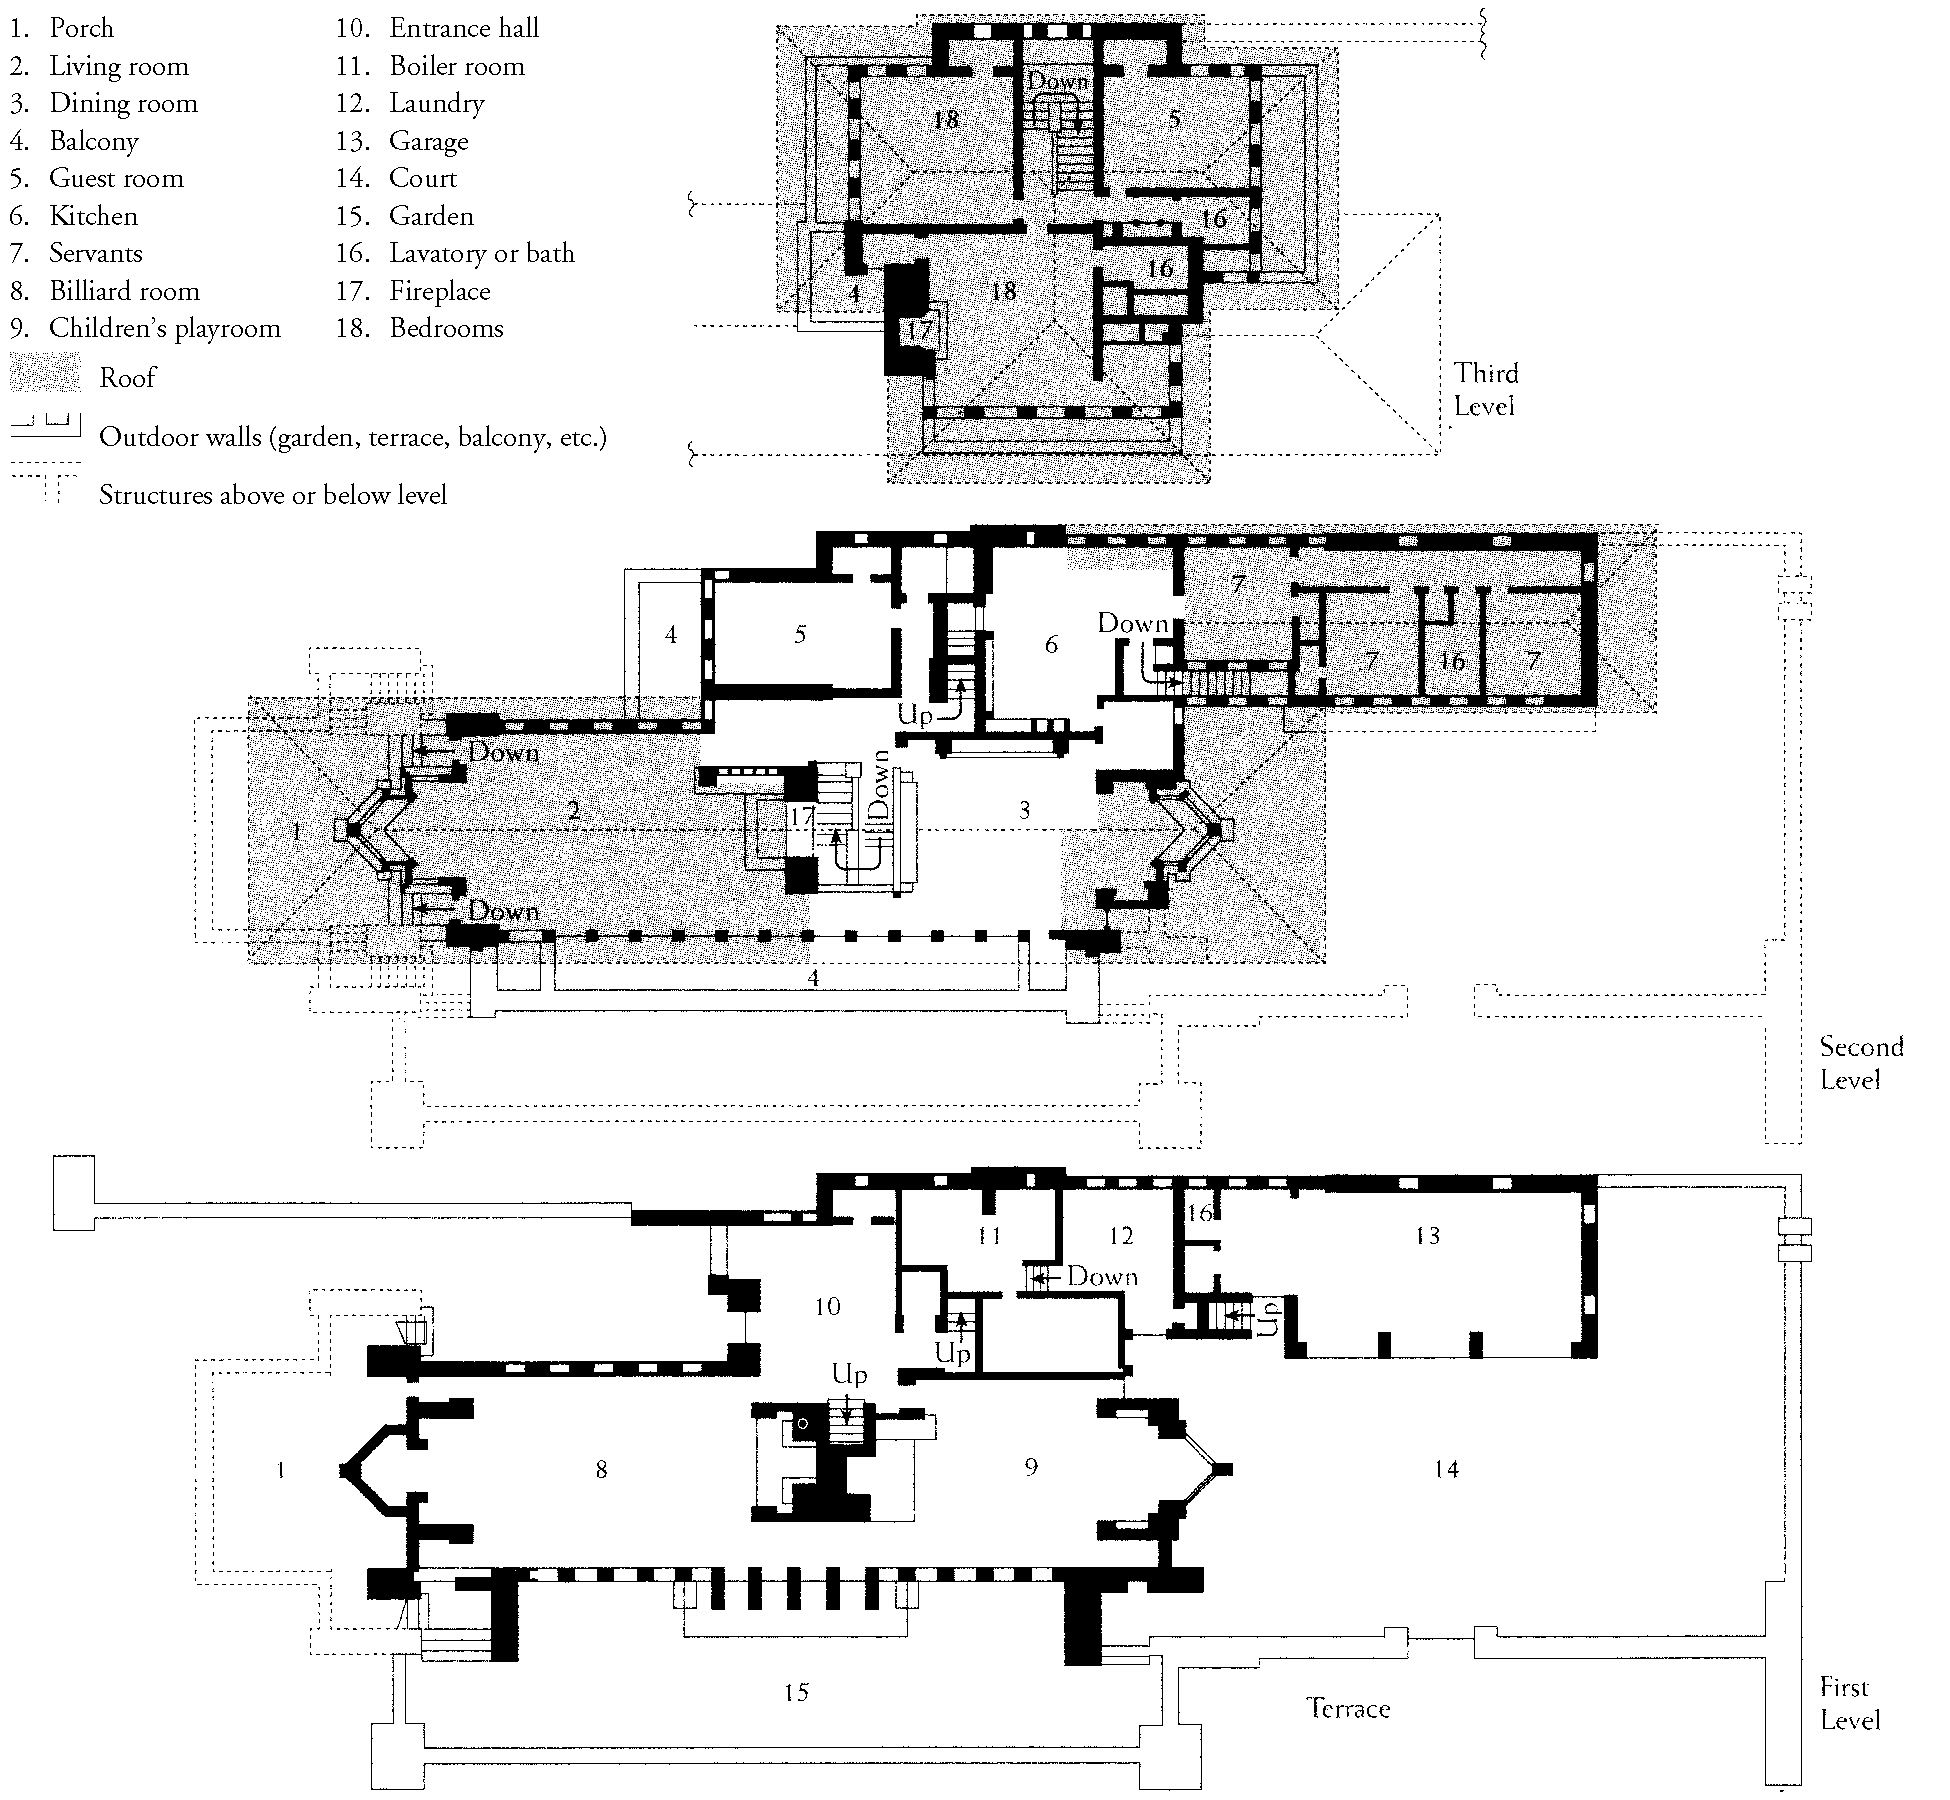 Frank Lloyd Wright Plan Of The Robie House Chicago